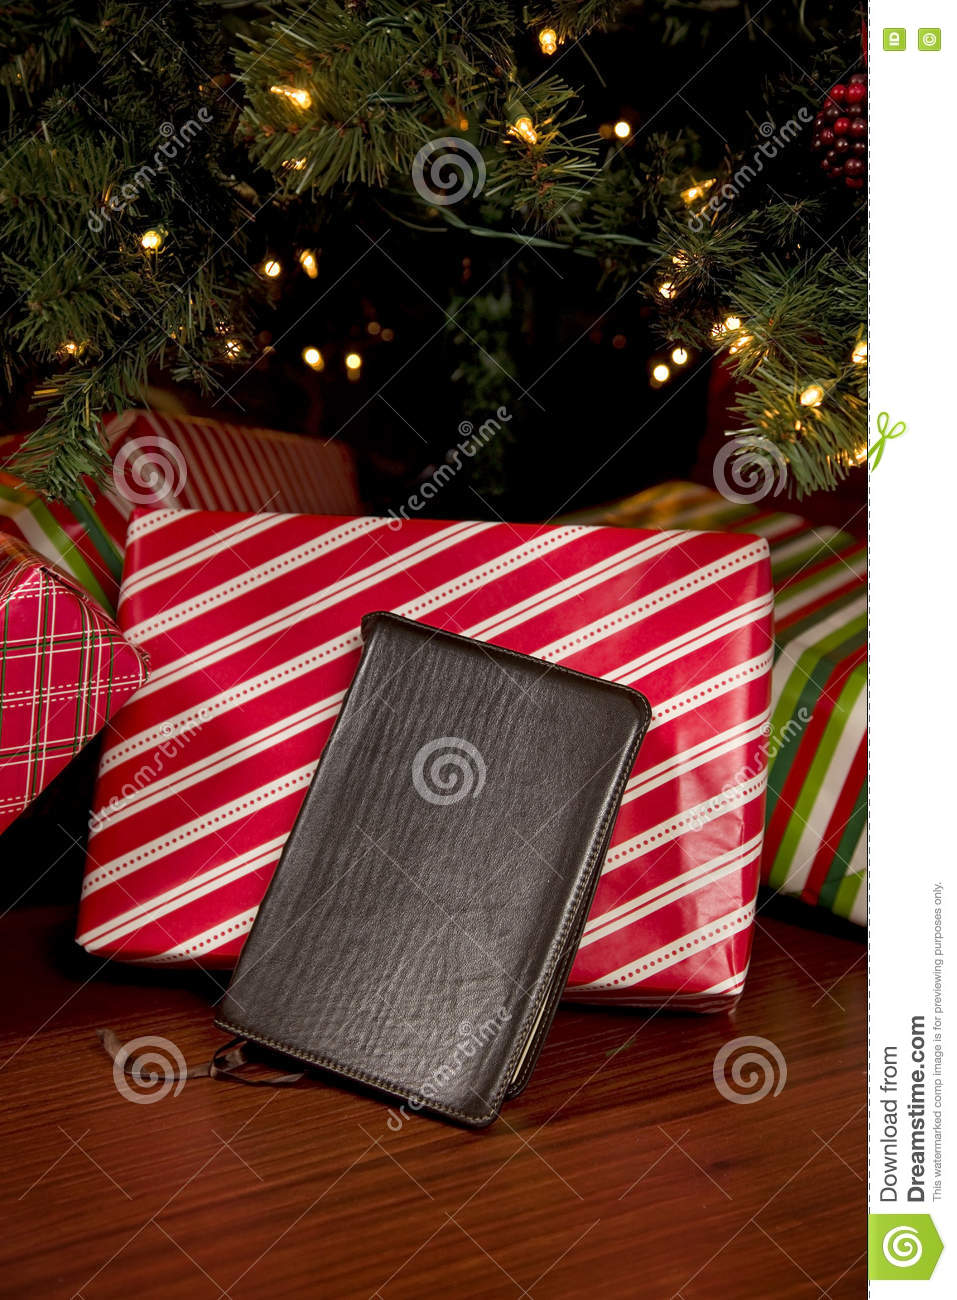 bible in front of a christmas tree